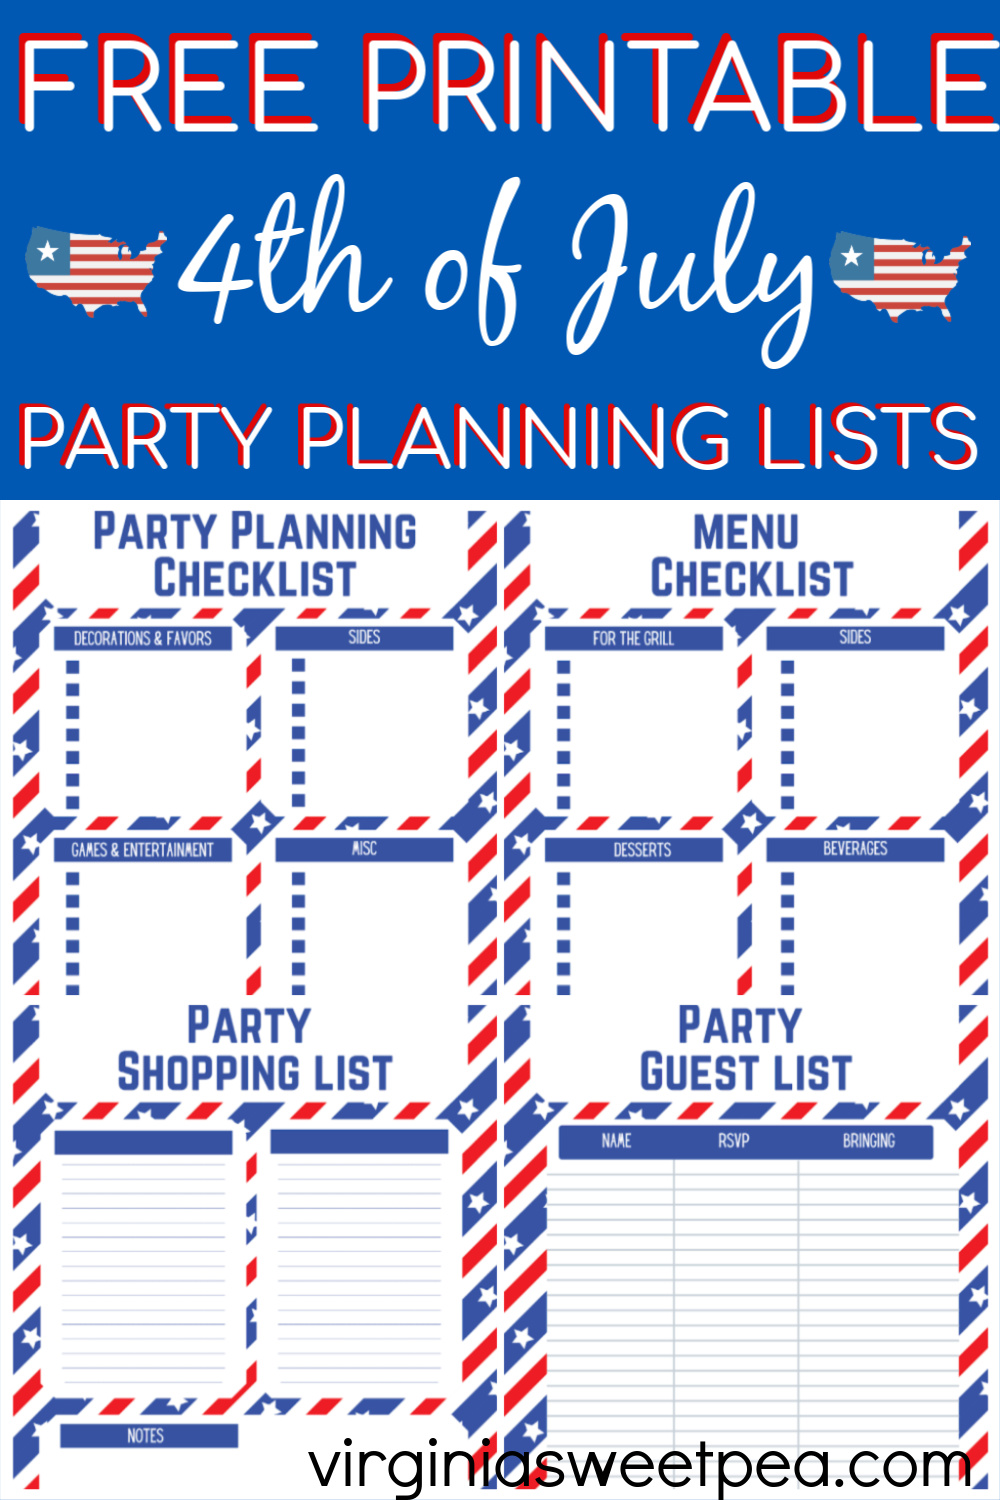 Free Printable 4th of July Party Planning Lists - Plan a 4th of July party using FREE printable party planning pages. #freeprintable #4thofjulyparty #4thofjulyprintables  via @spaula